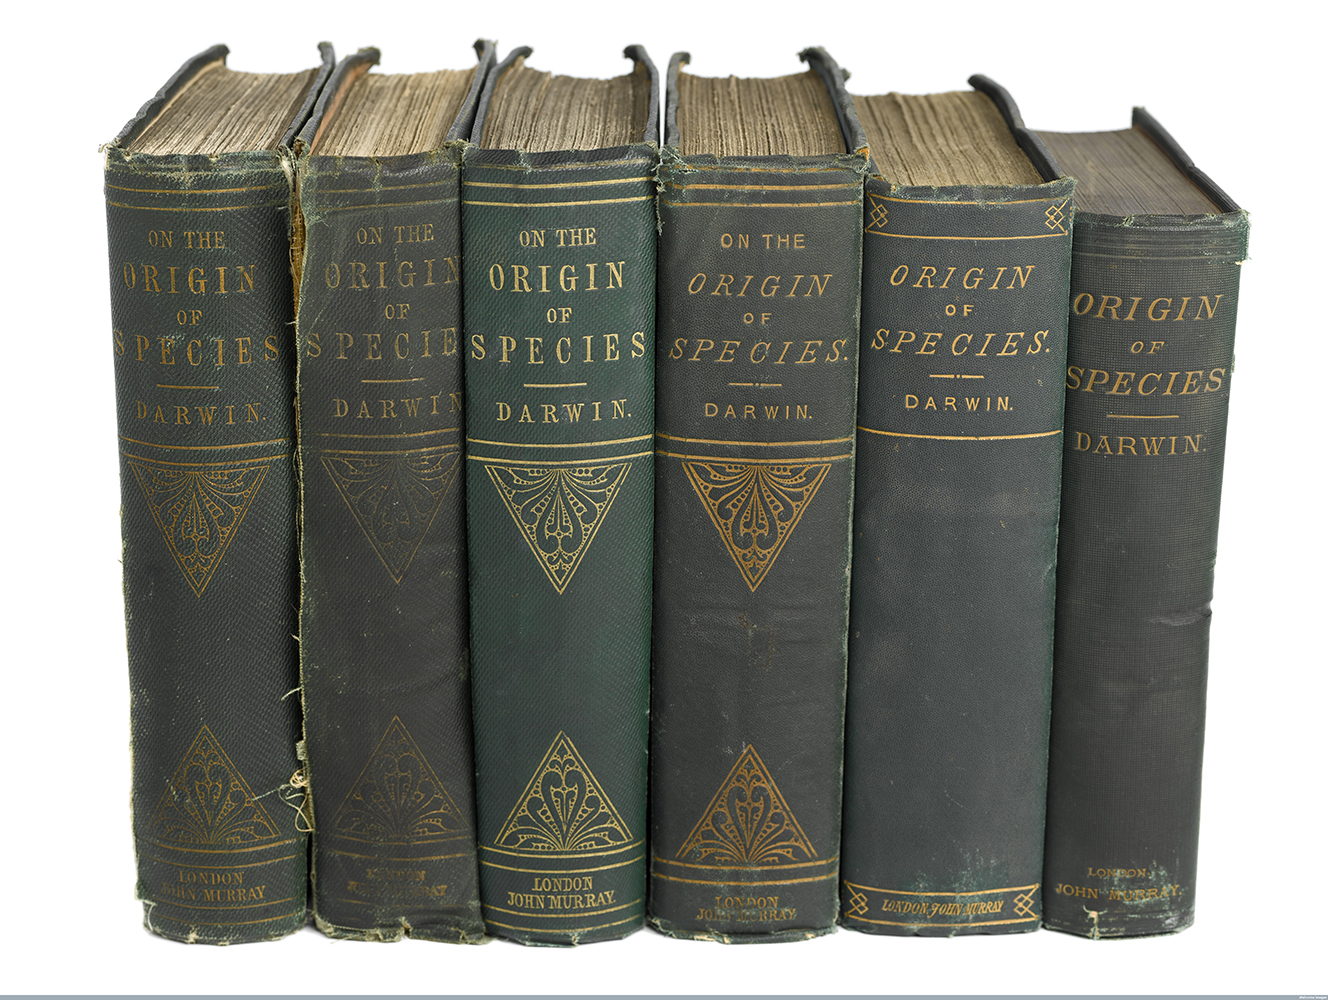 6 editions of 'The Origin of Species' by Charles Darwin